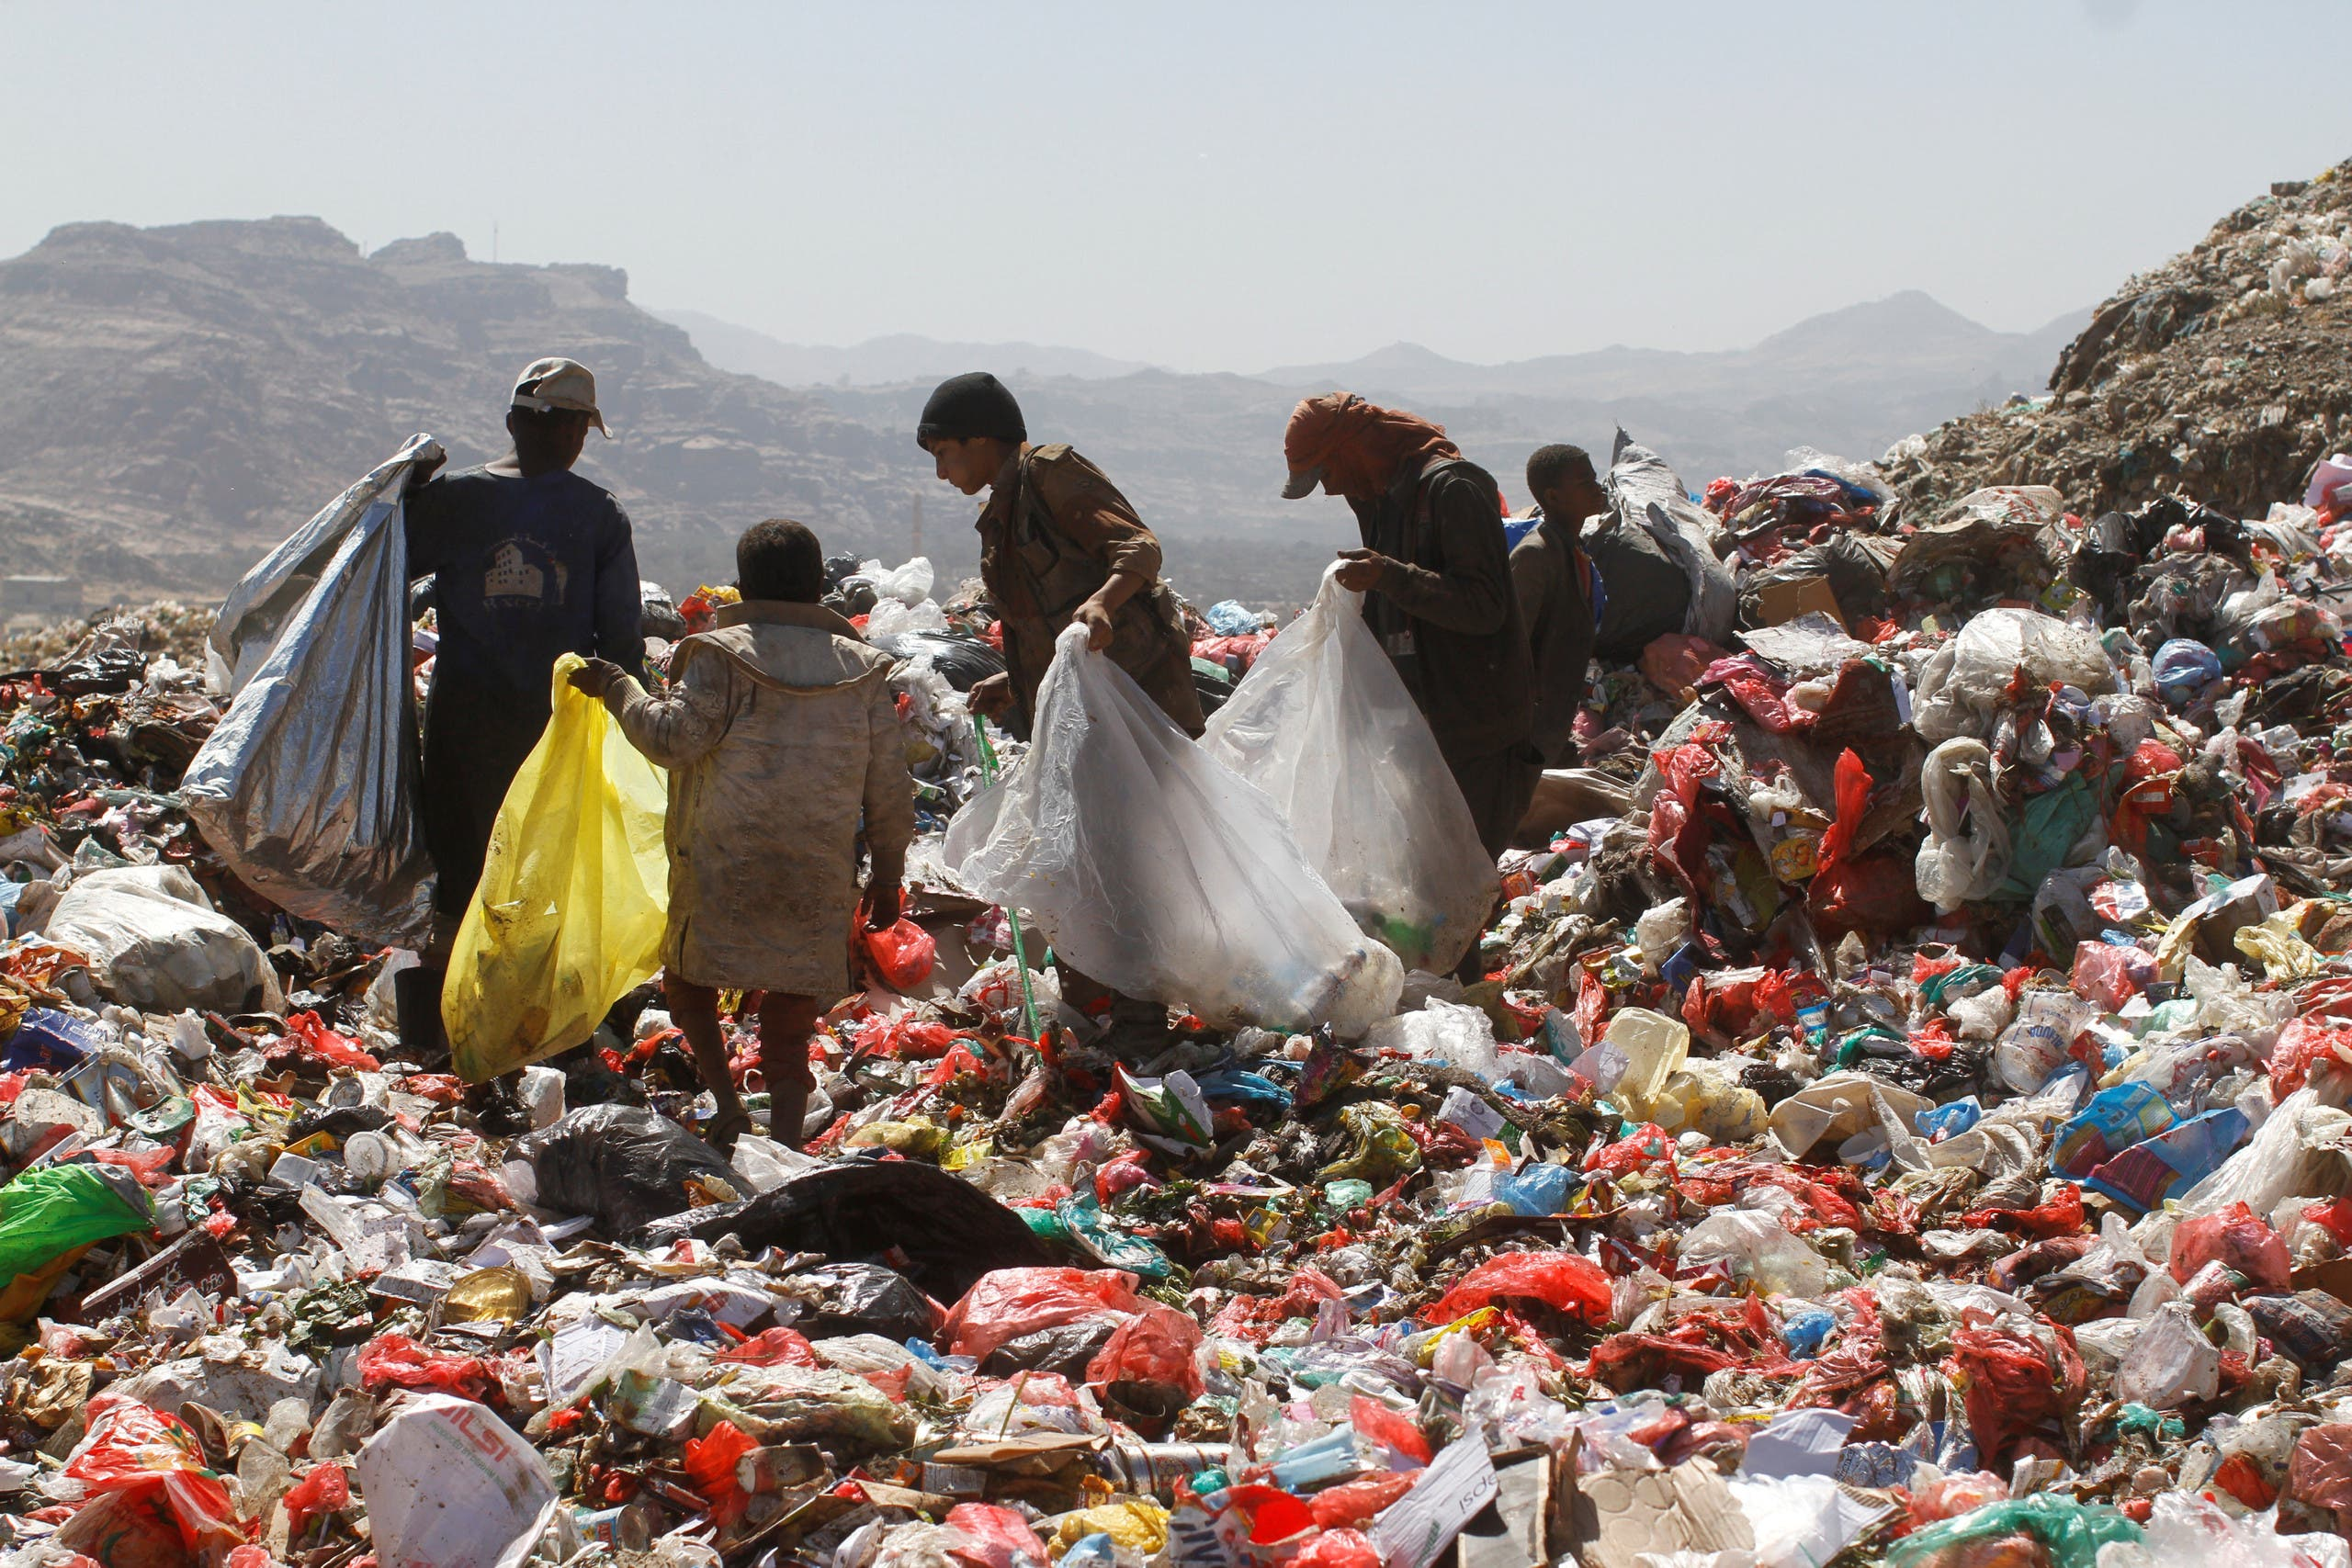 People collect recyclable items from piles of rubbish at a landfill site on the outskirts of Sanaa, Yemen November 16, 2016. (Reuters)